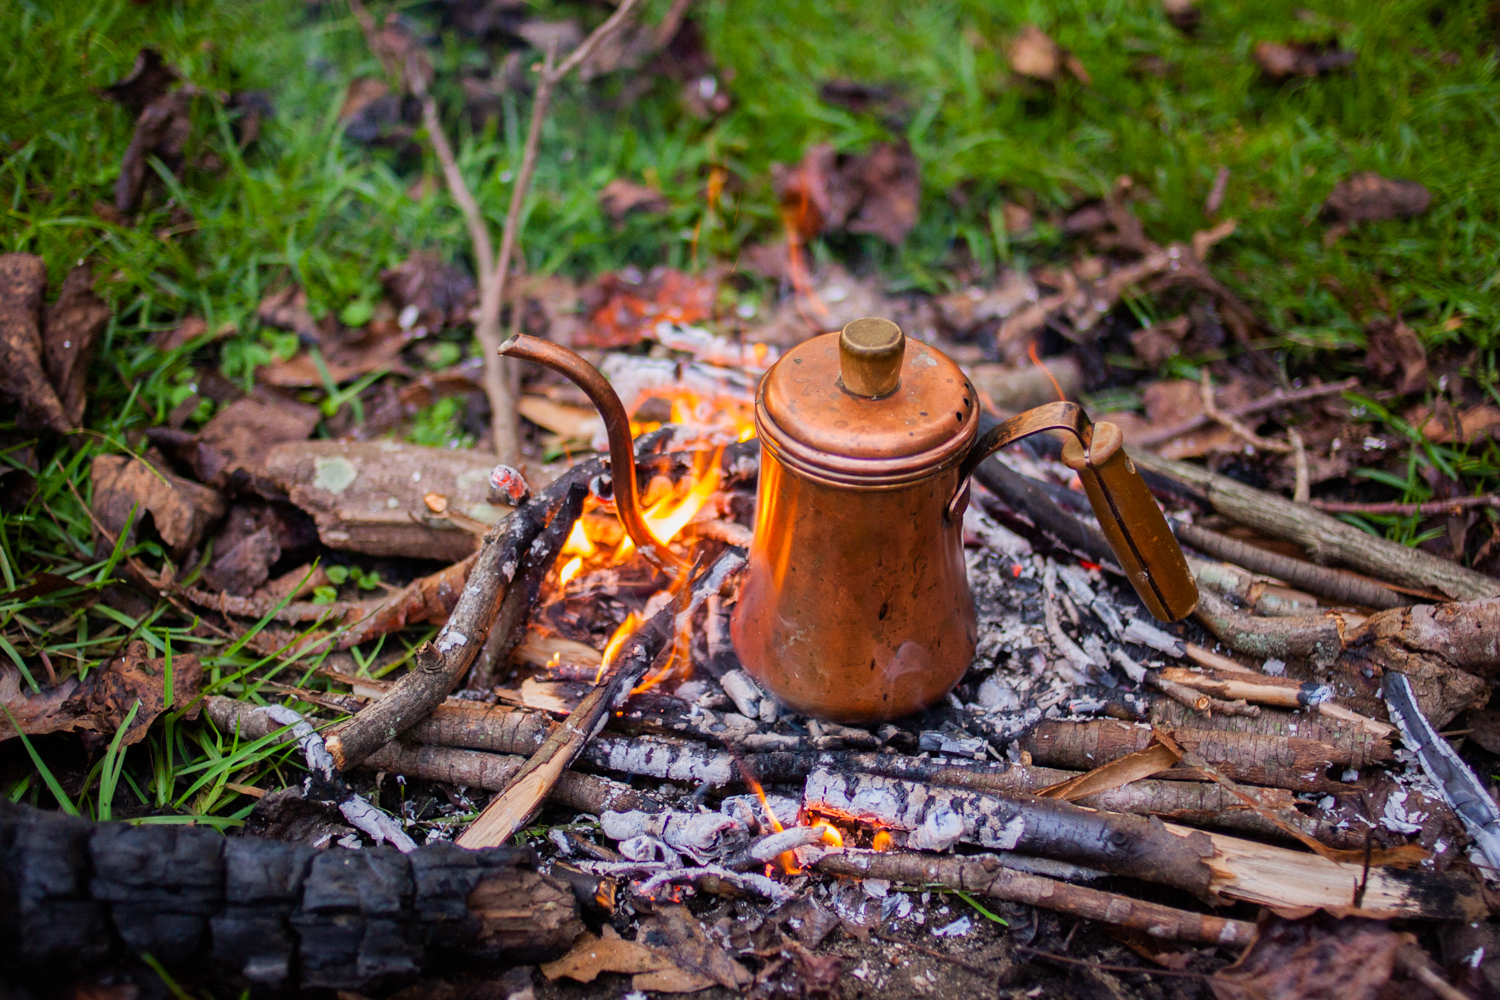 camping coffee maker - boiling water